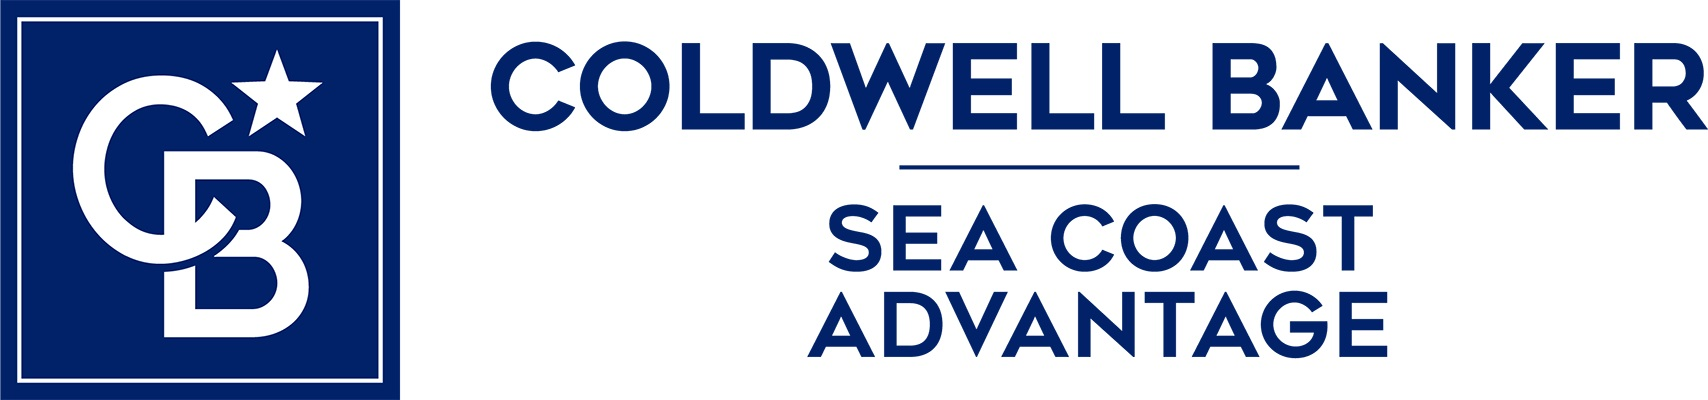 Jodi Crumpler - Coldwell Banker Sea Coast Advantage Realty